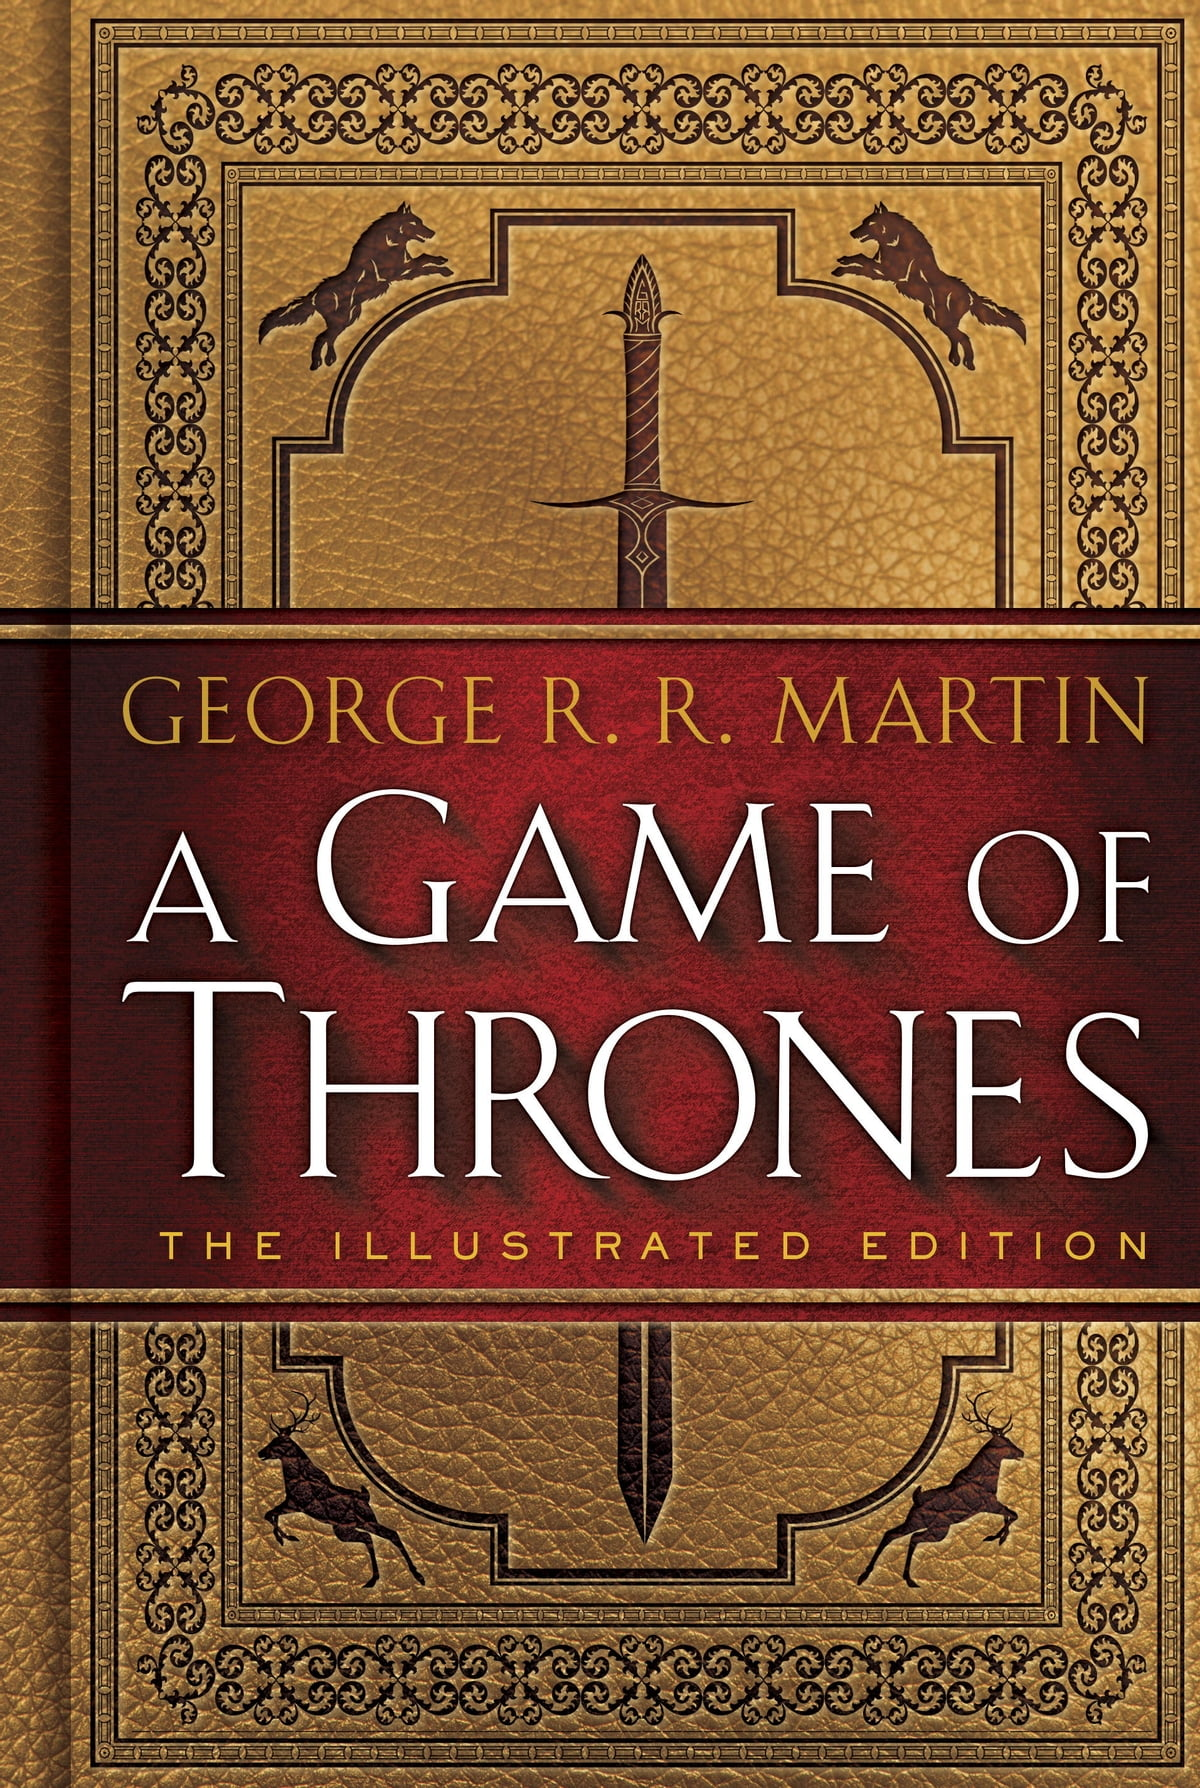 A Game Of Thrones: The Illustrated Edition Ebook By George R R Martin   9781101965870  Rakuten Kobo